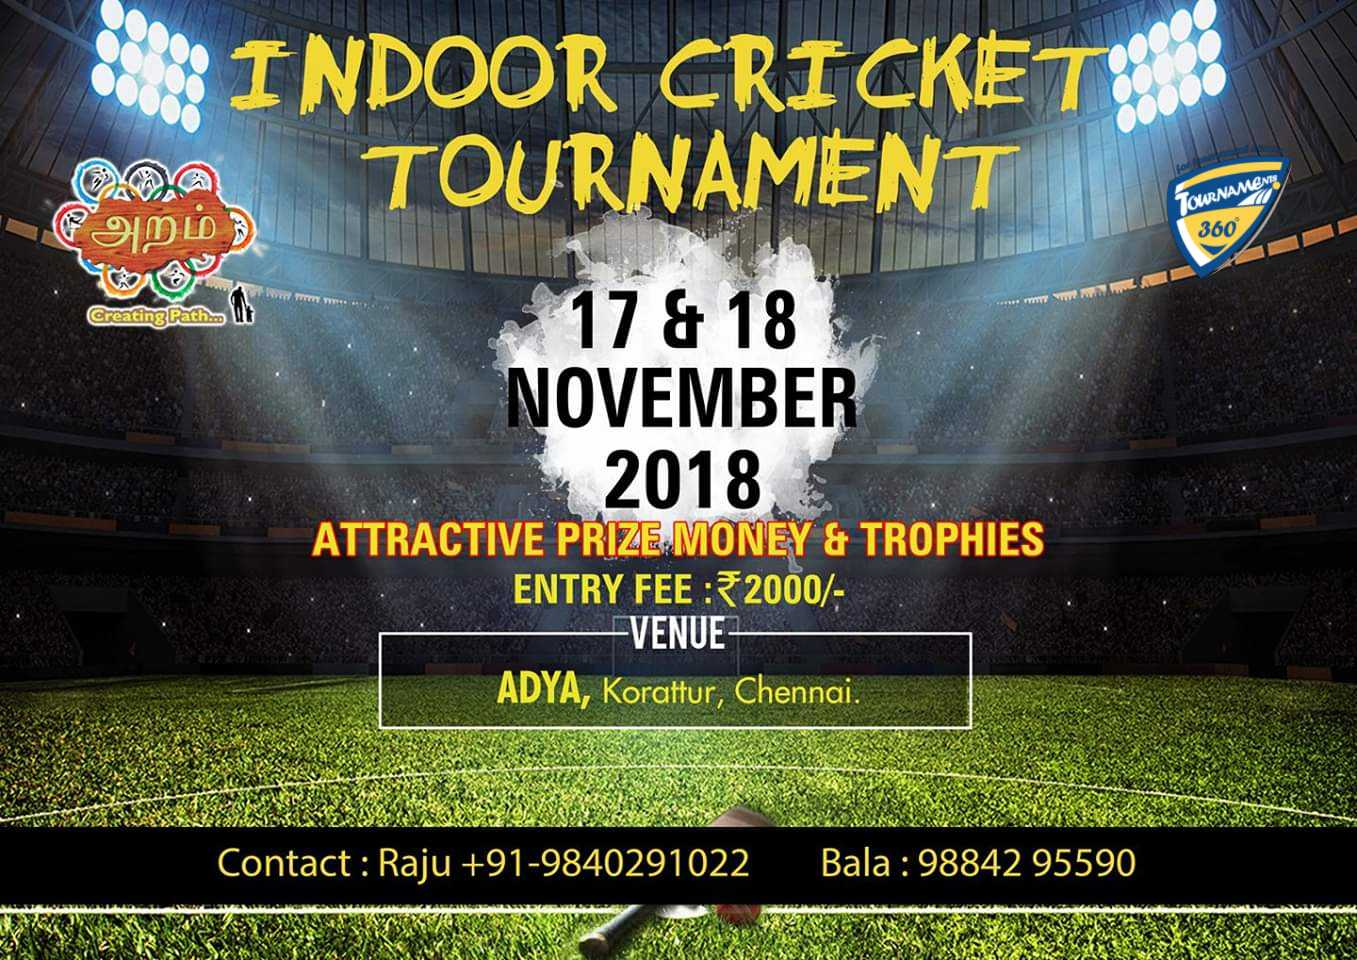 Indoor Cricket Tournament in Chennai